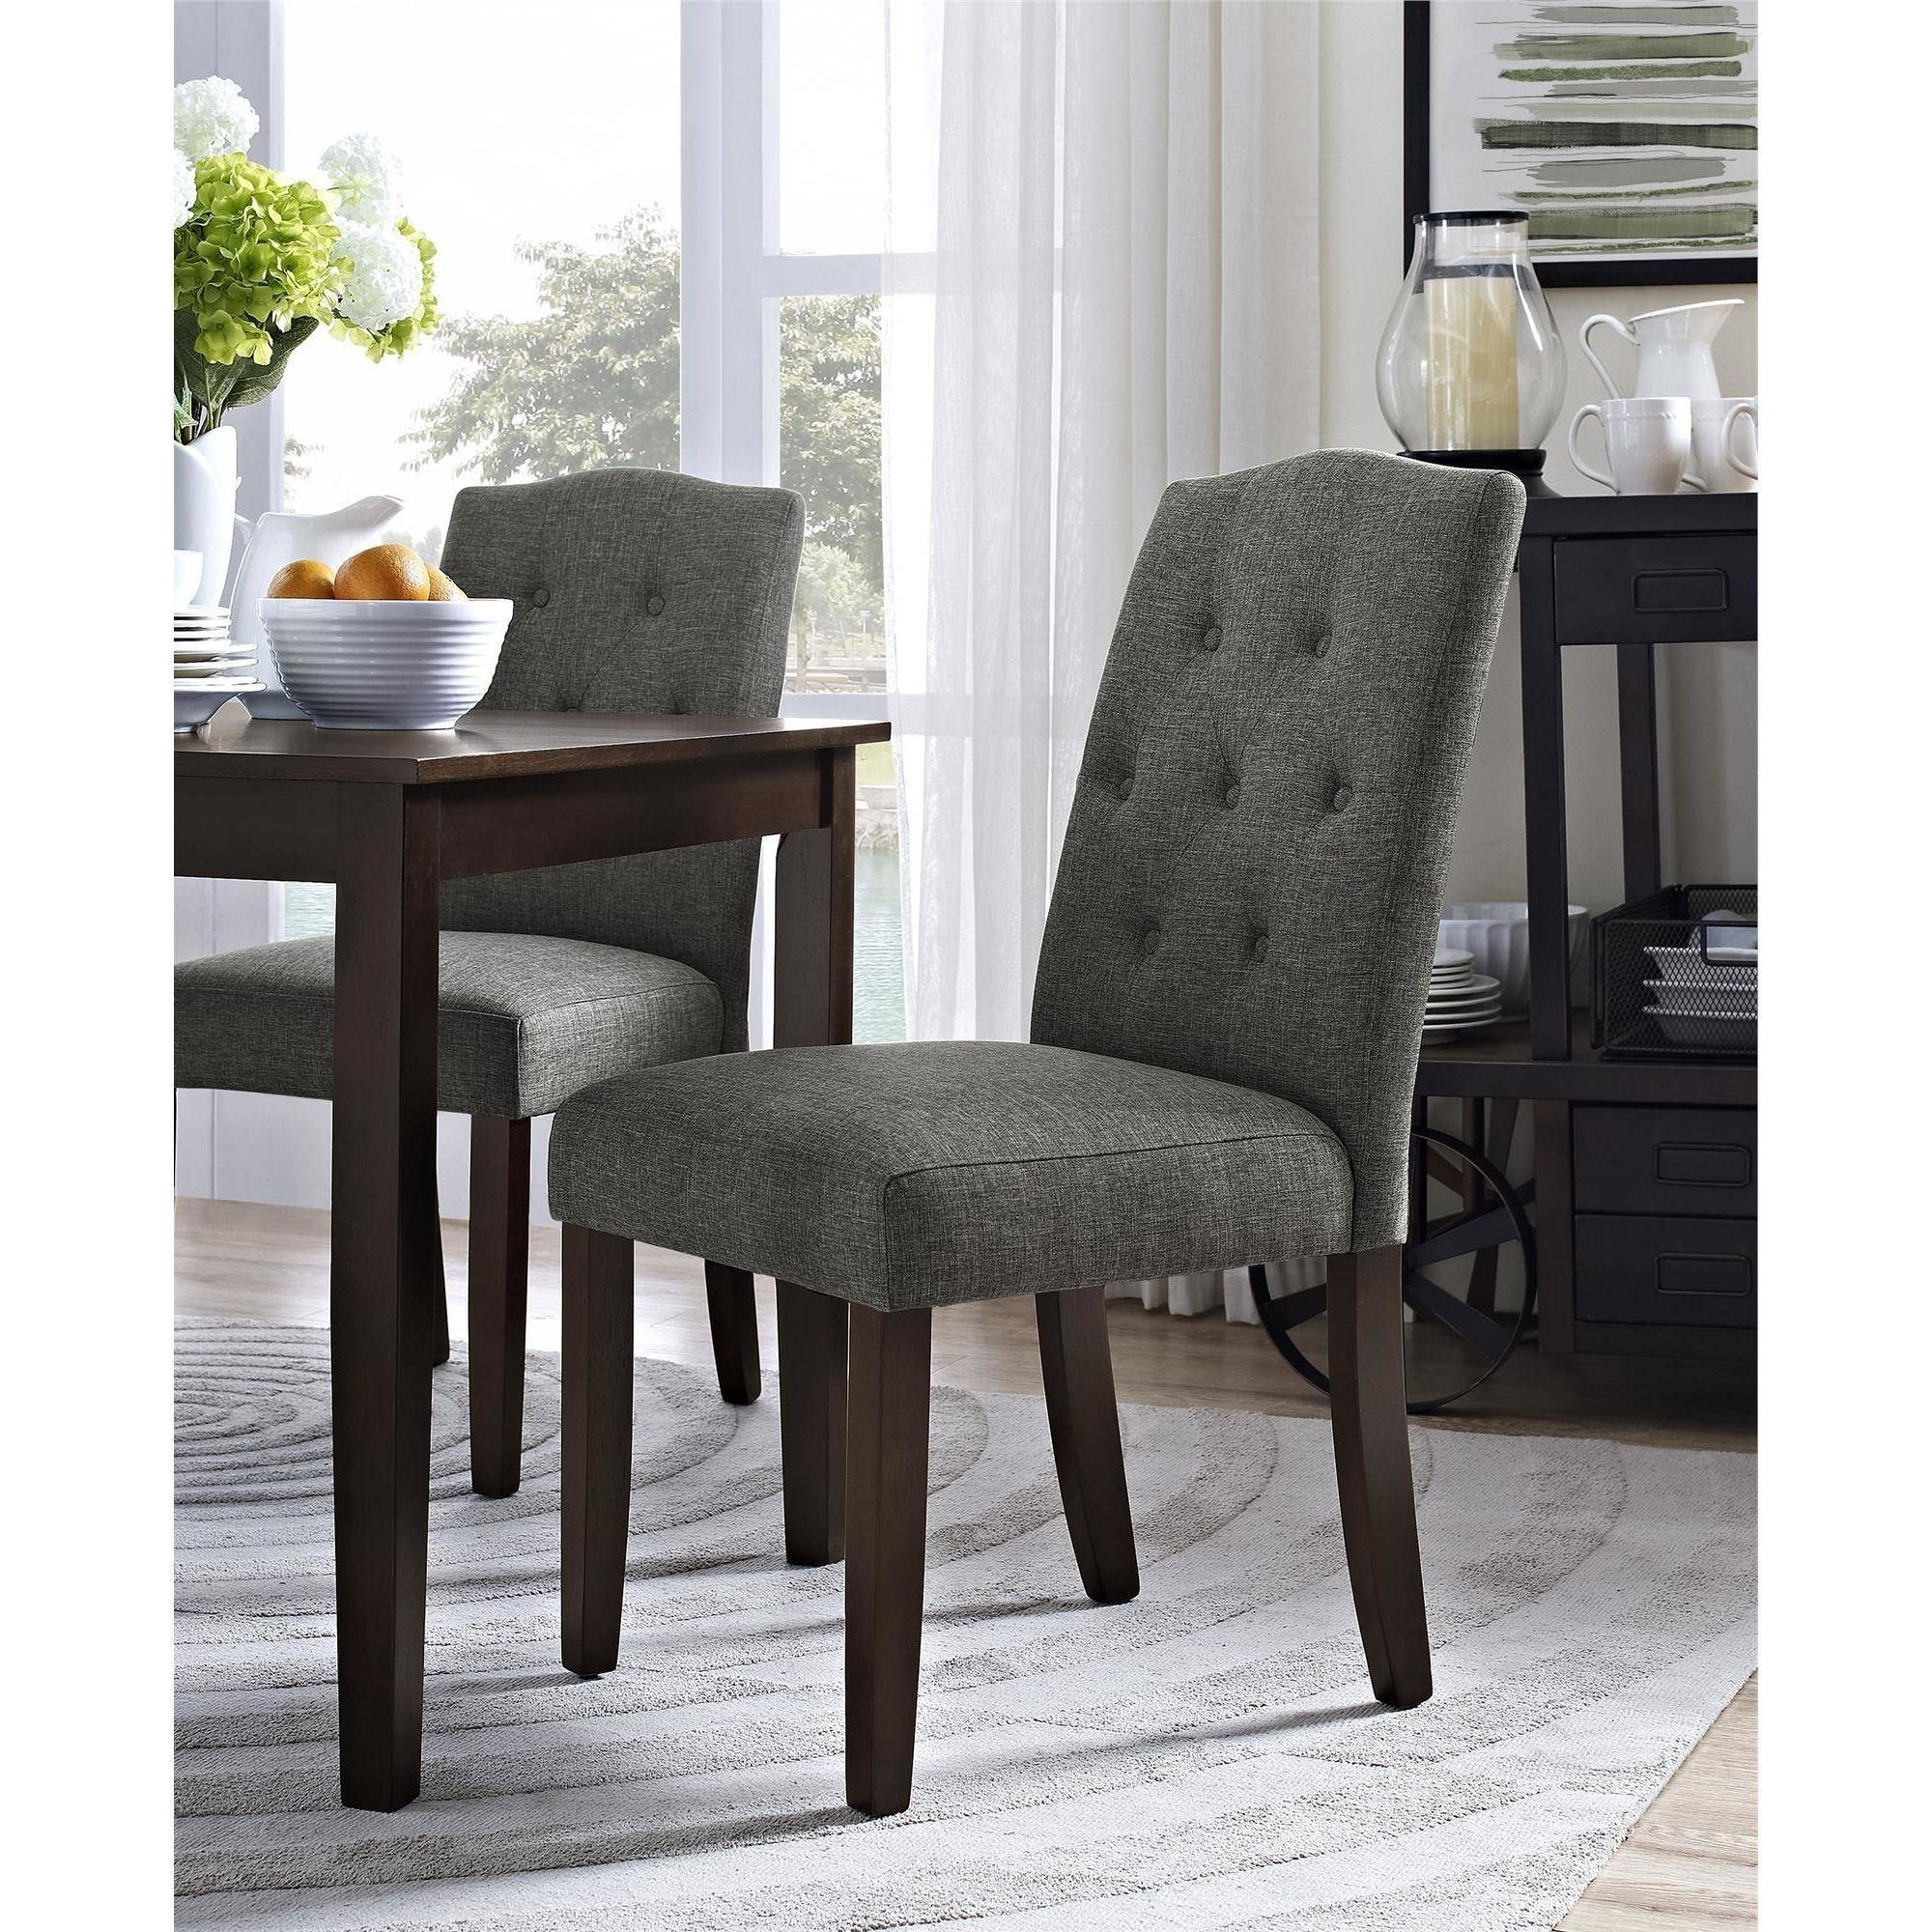 Most Up To Date Dining Tables With Grey Chairs Inside Better Homes And Gardens Parsons Tufted Dining Chair, Multiple (View 7 of 25)